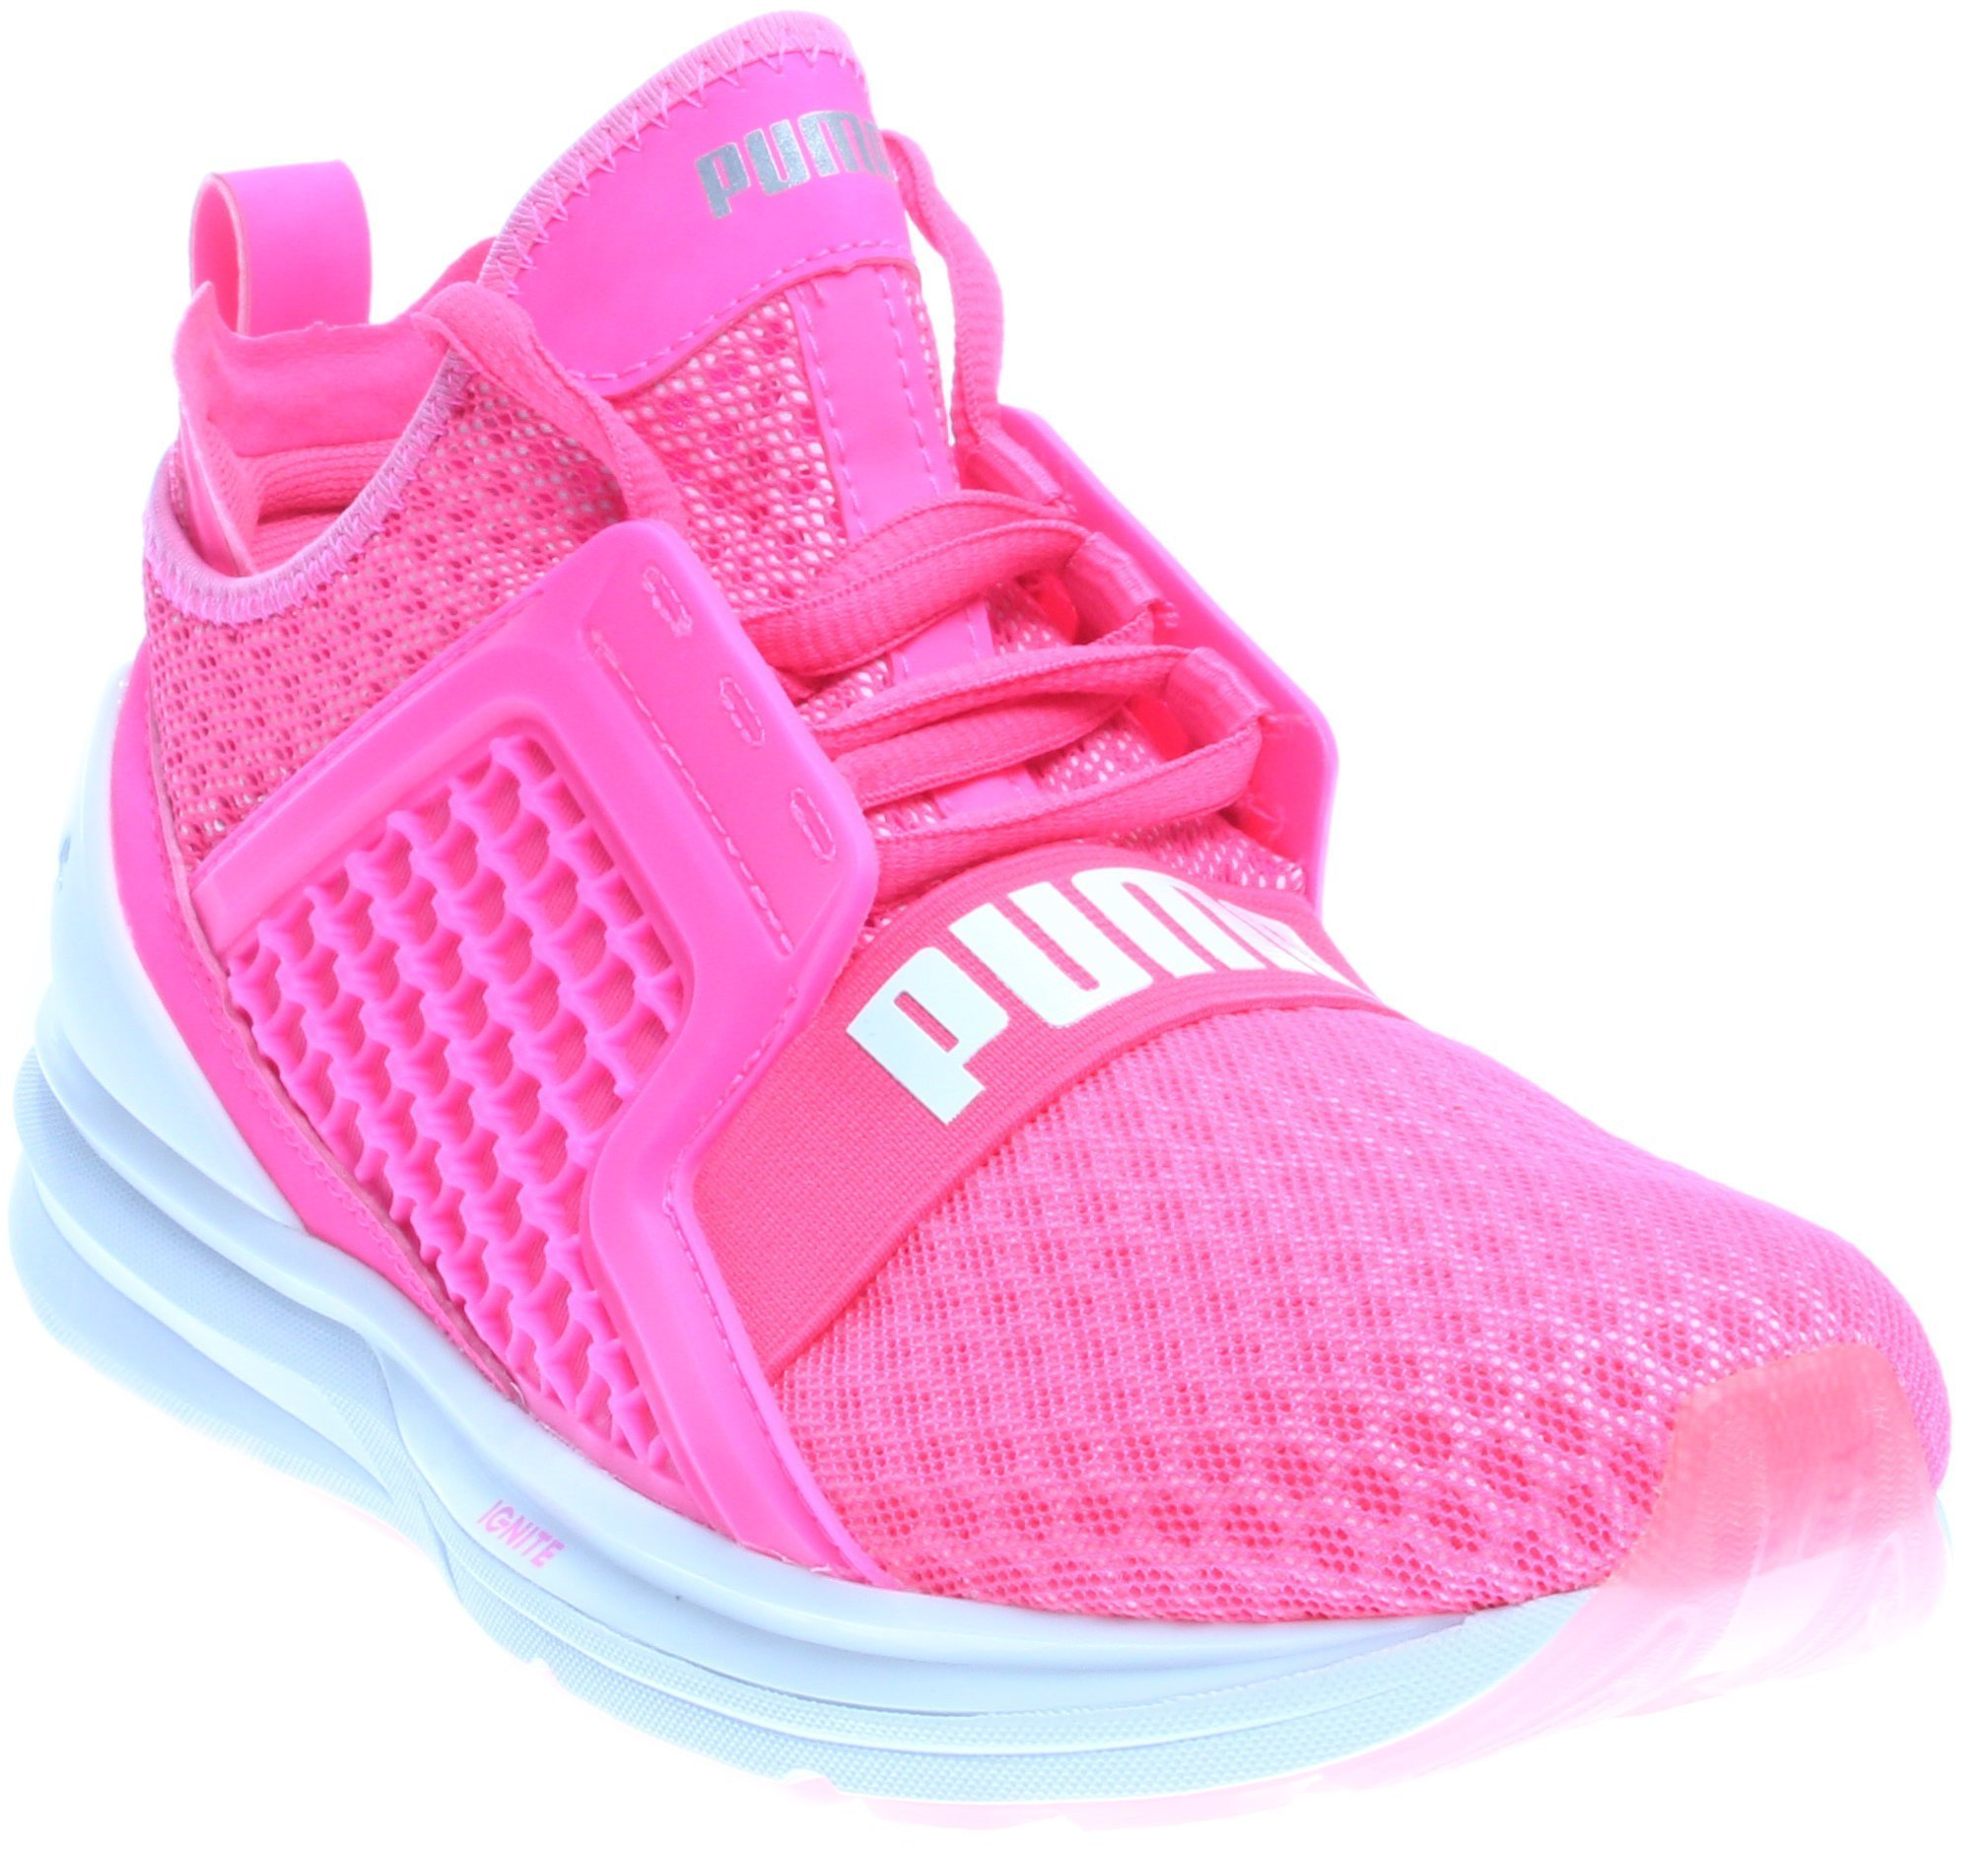 PUMA Women's Ignite Limitless WN's Cross-Trainer Shoe, Knockout Pink, 10 M US